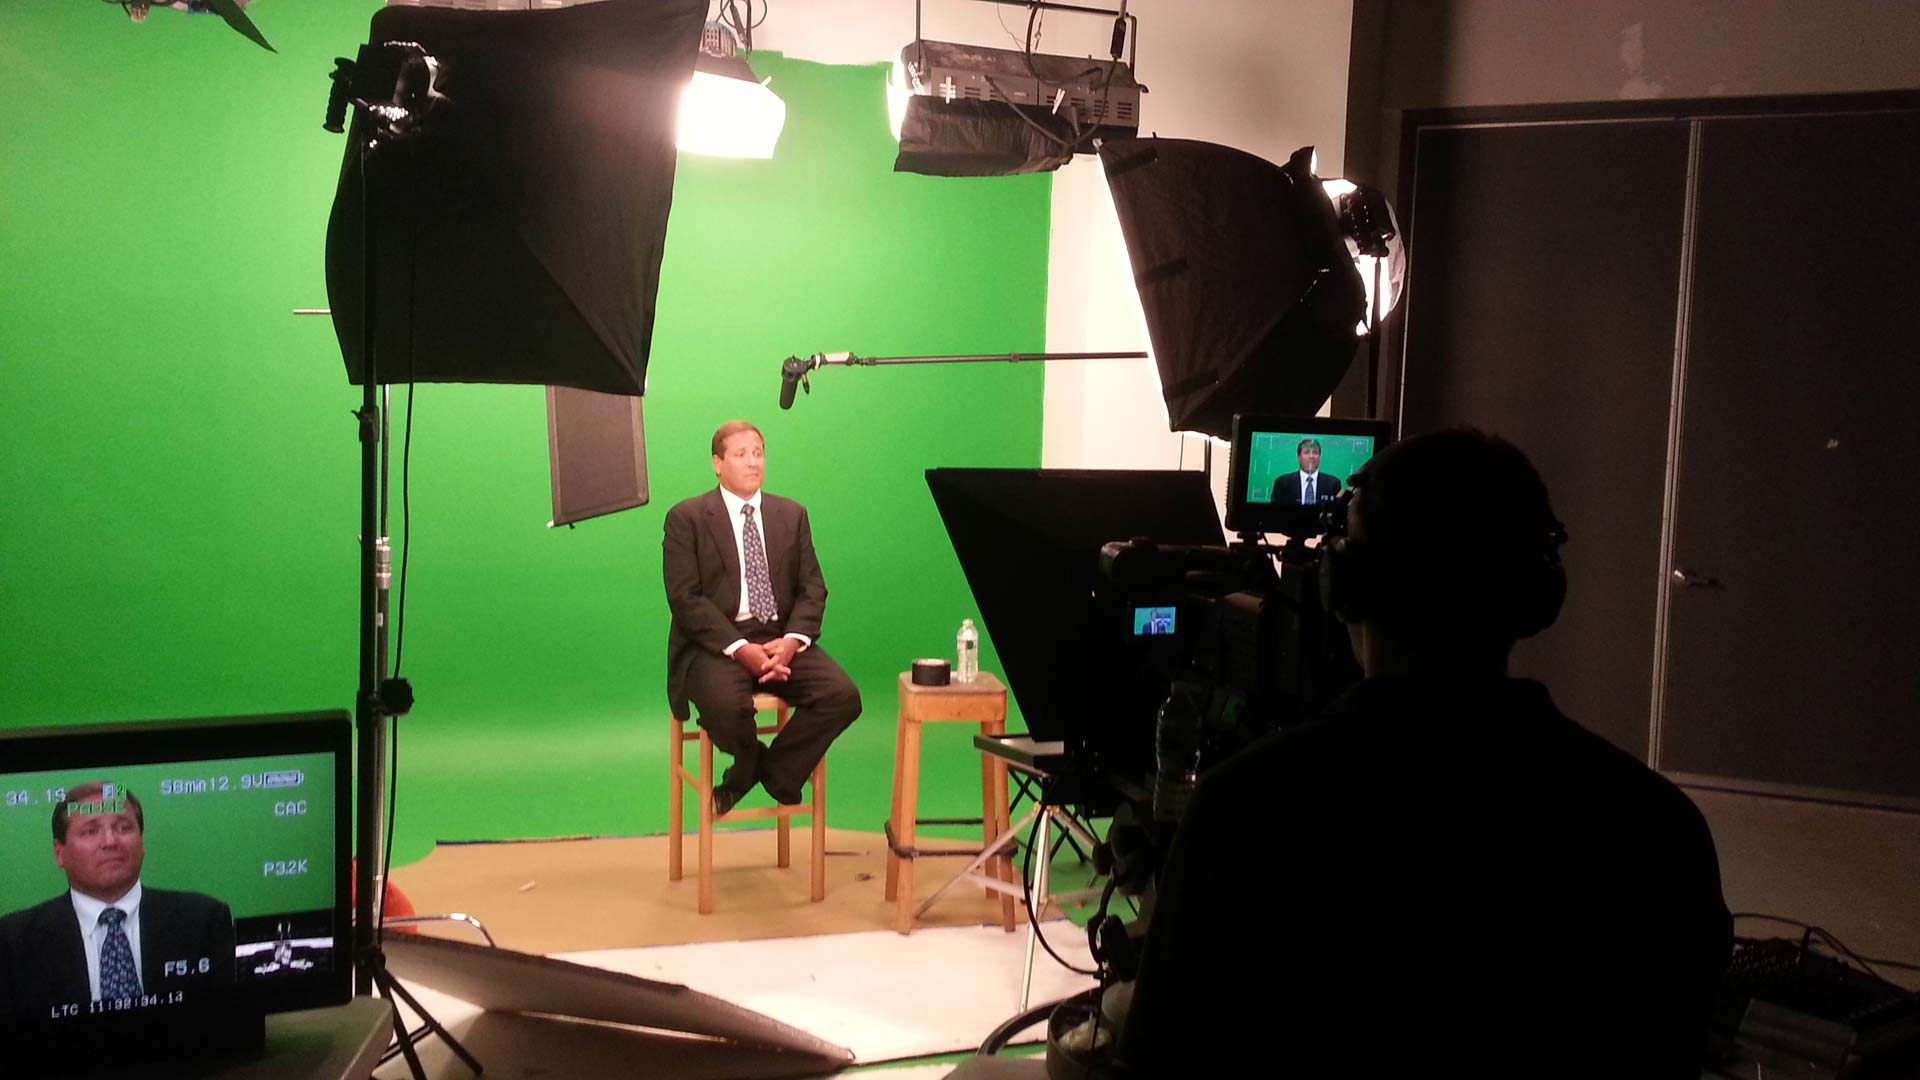 Production Photo of a doctor shoot on green screen in Studio B at MediaMix Studios